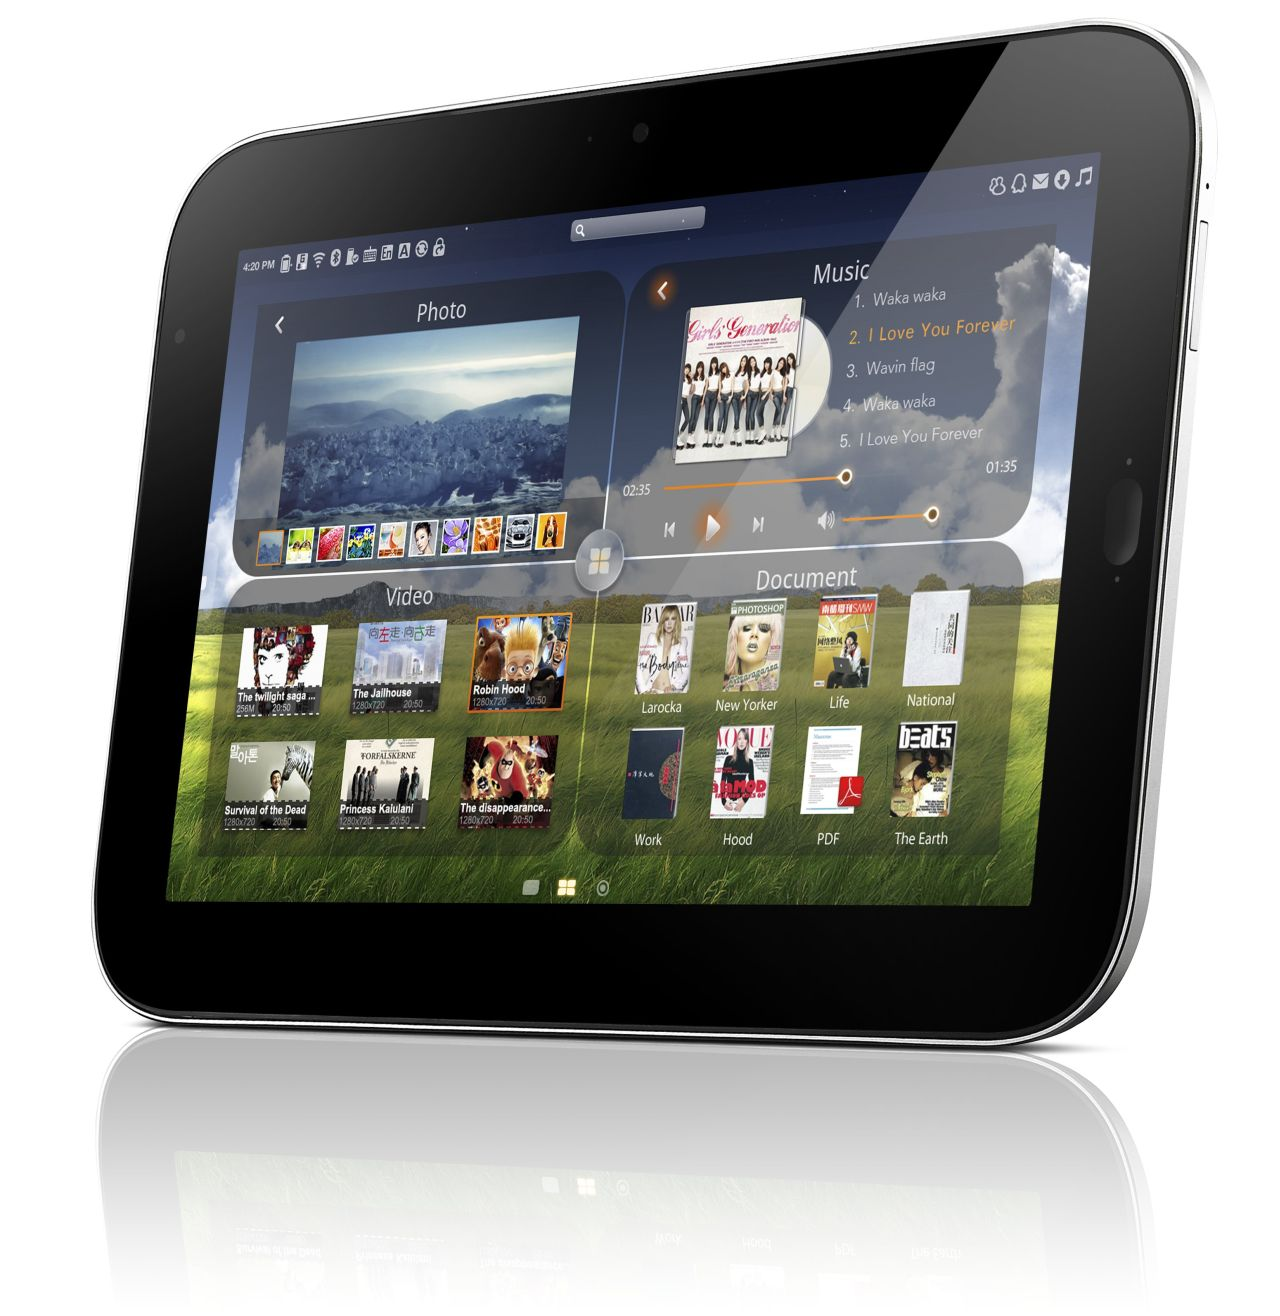 10-Zoll-Tablet: Lenovo zeigt Oak-Trail-Prototyp - Lepad Slate (Android)